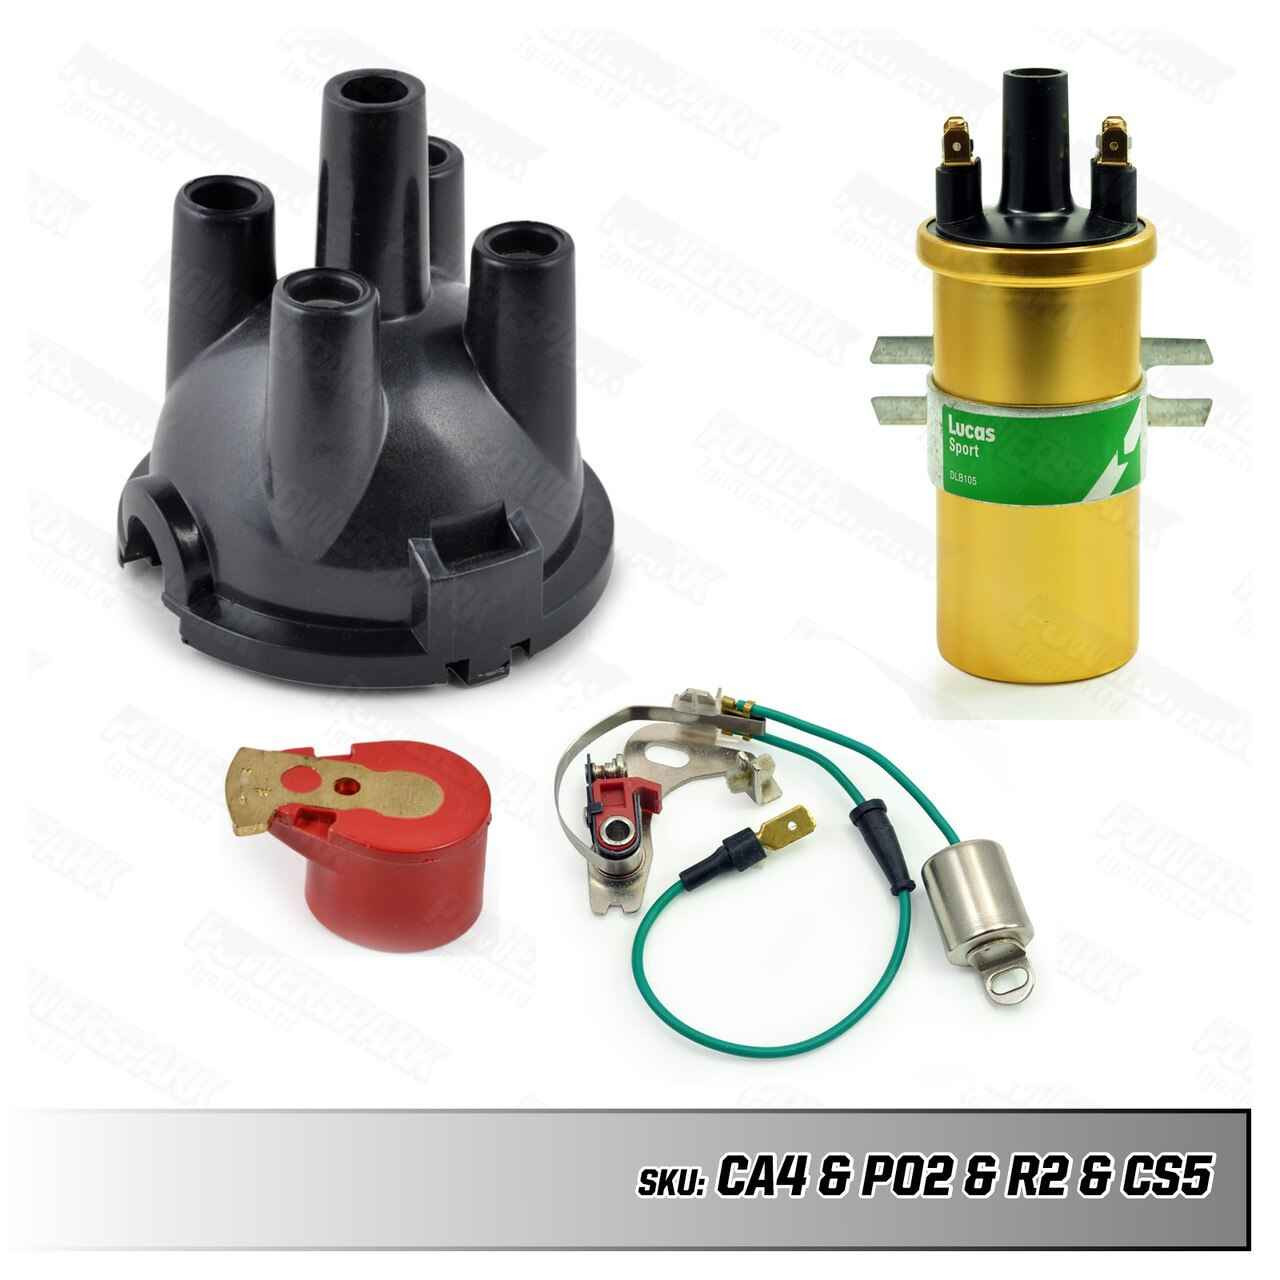 Lucas Lucas 23D and 25D Distributor Upgrade Kit with Ignition Coil